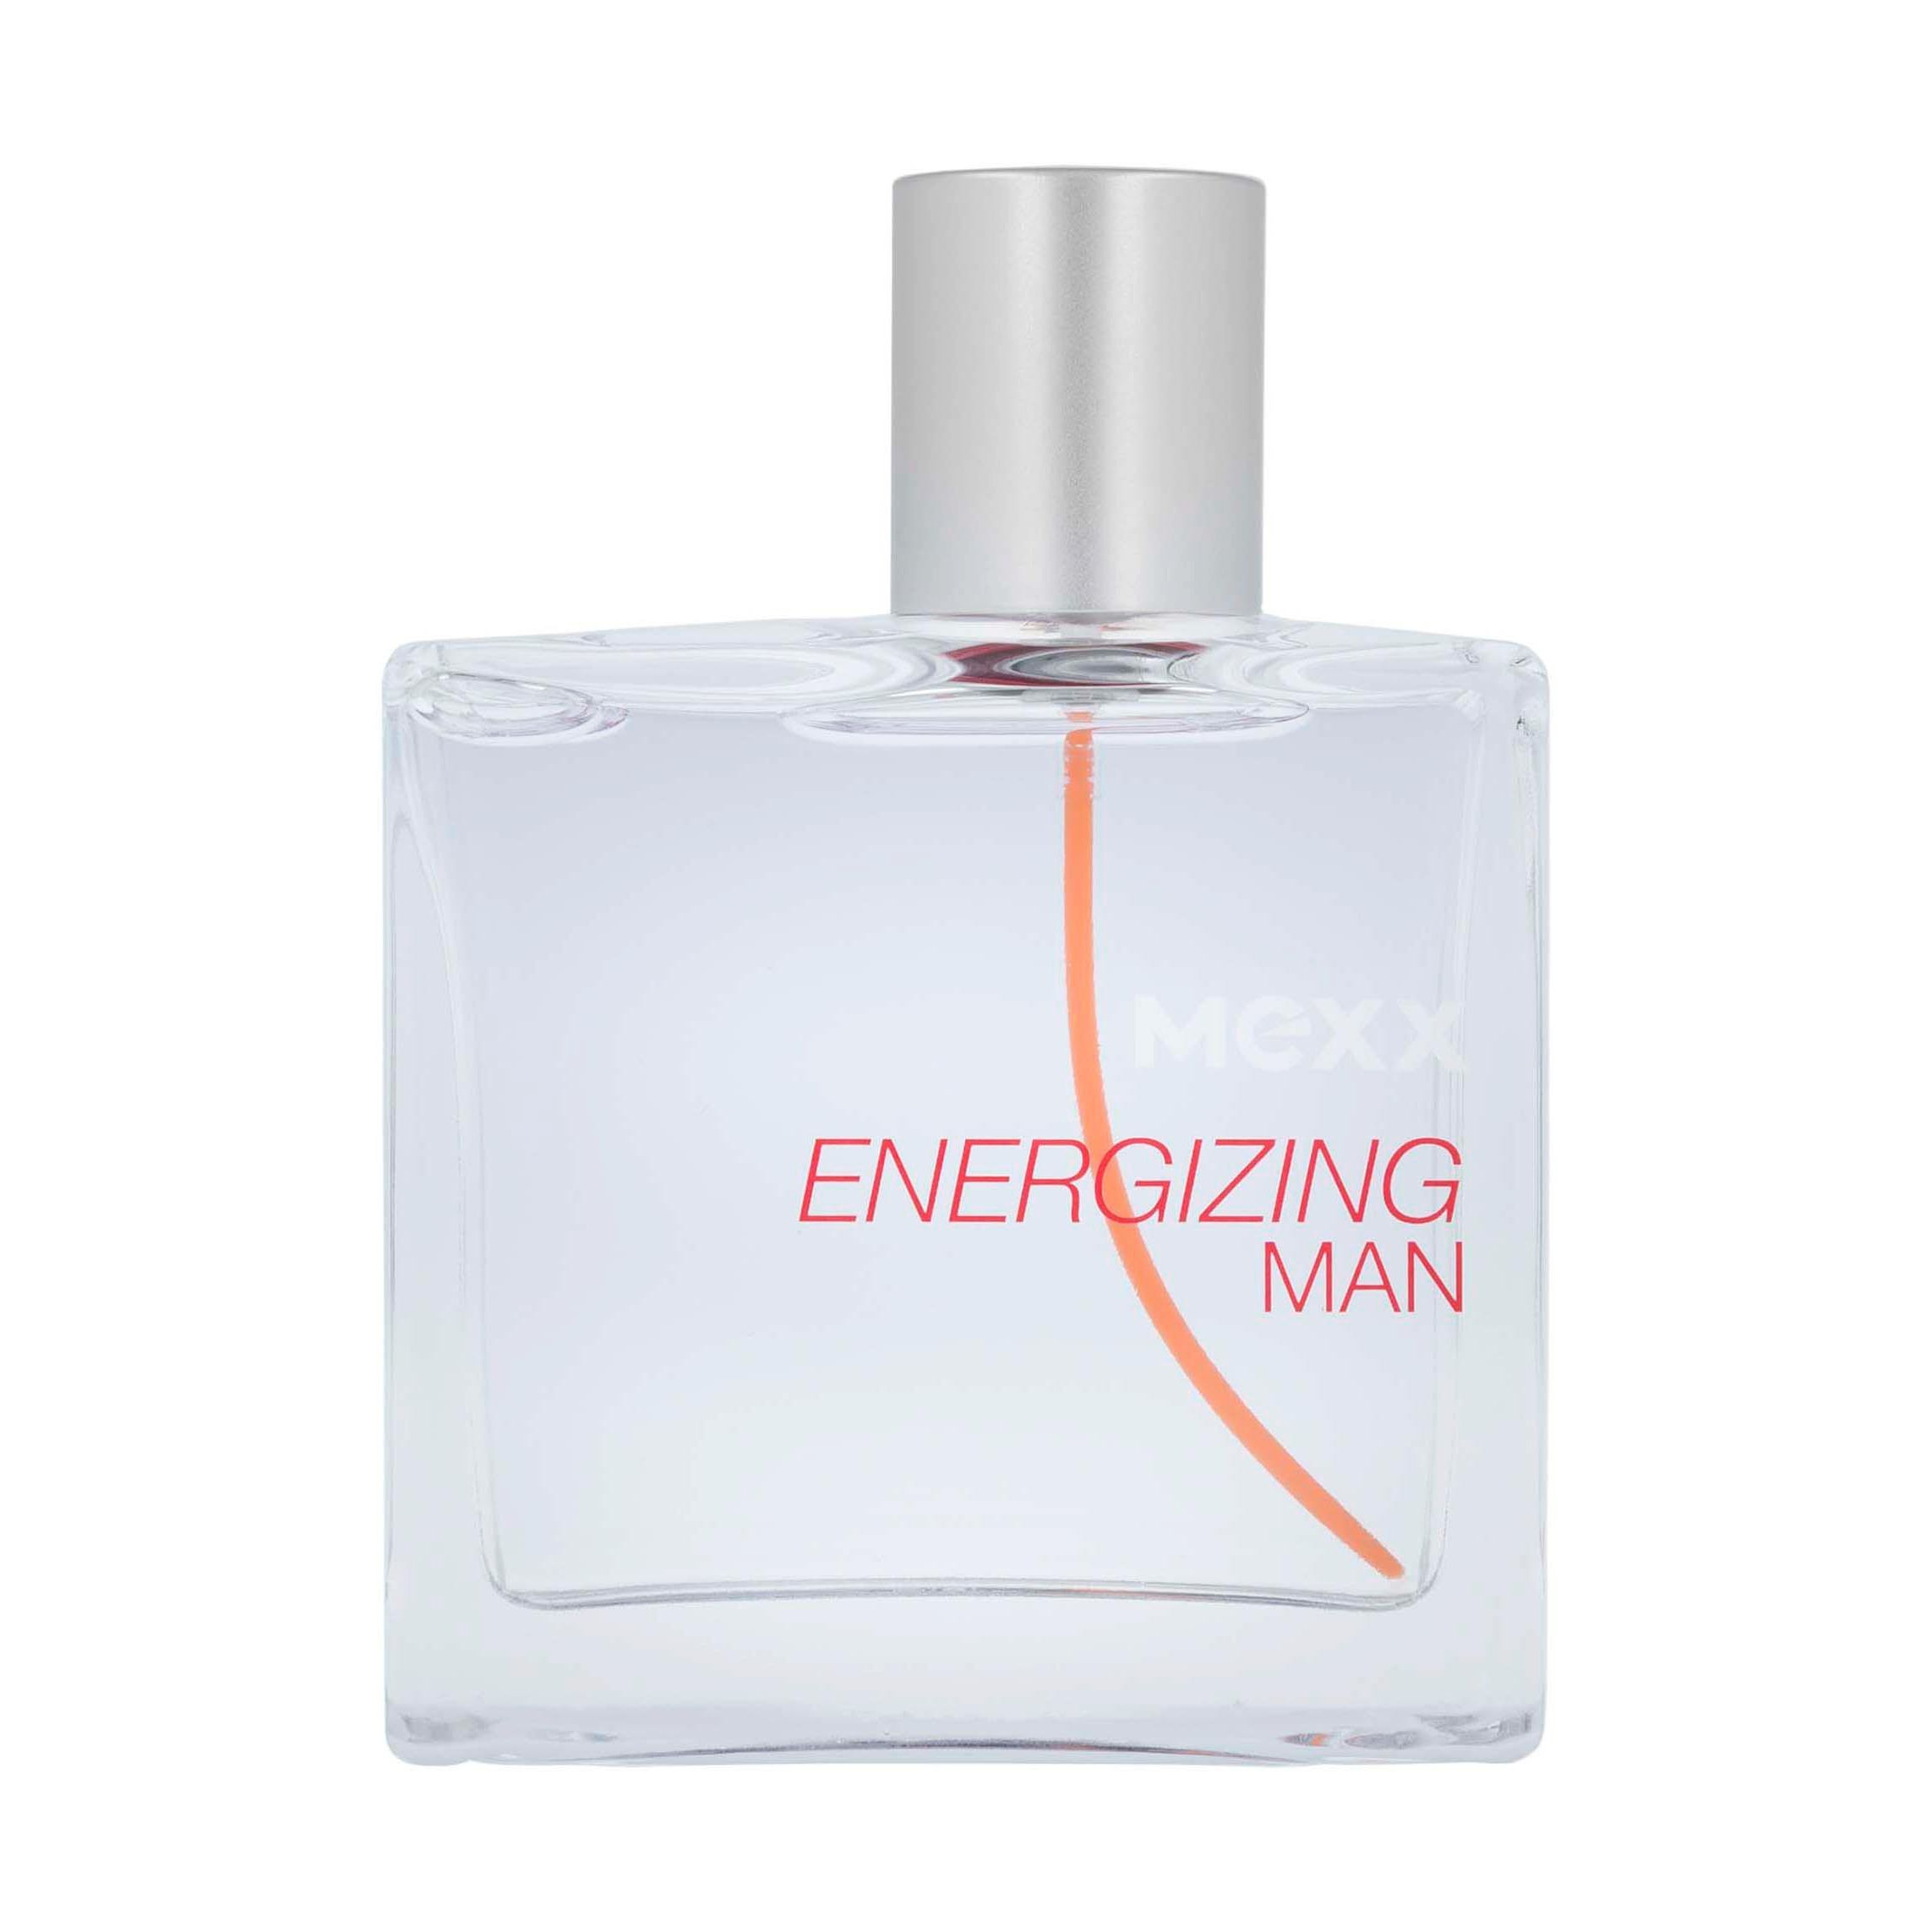 Mexx Energizing Man Eau de Toilette 50 ml Spray